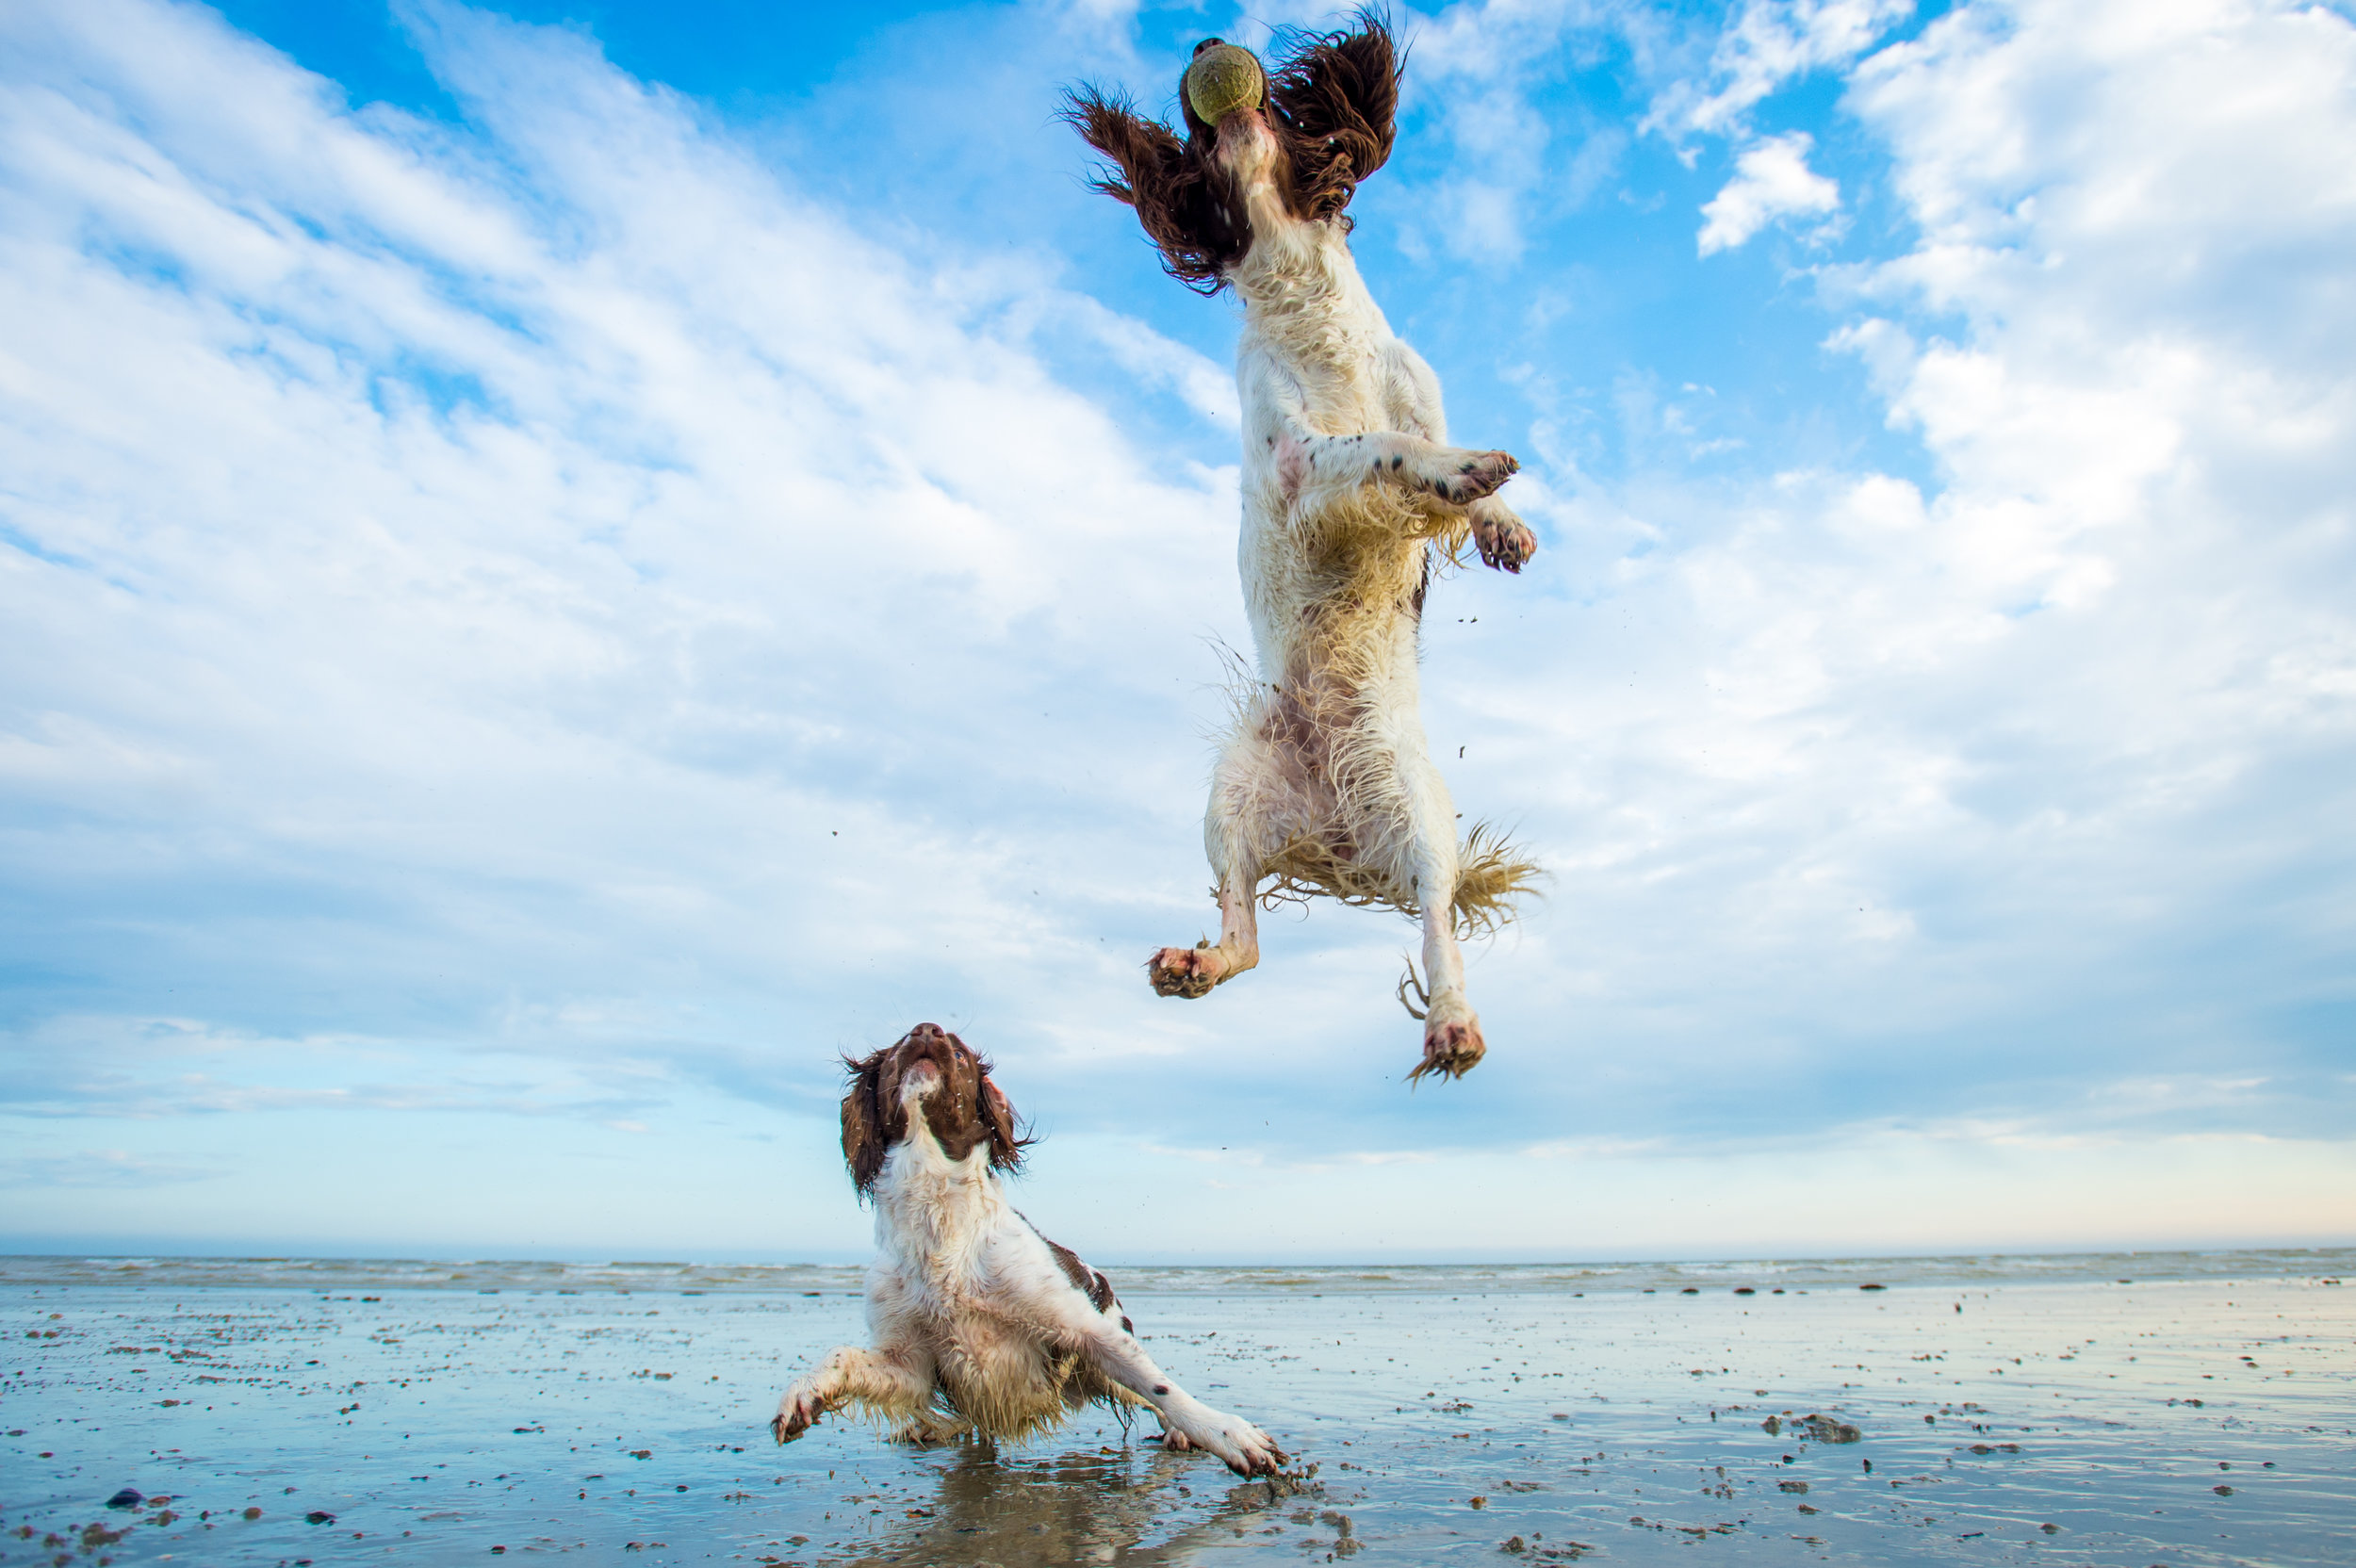 These two Spaniels absolutely love the ball and they didn't really care where they were, so it was their Mum's decision to have the shoot at the beach and we basically spent the whole time making it fun and playing with their beloved ball.